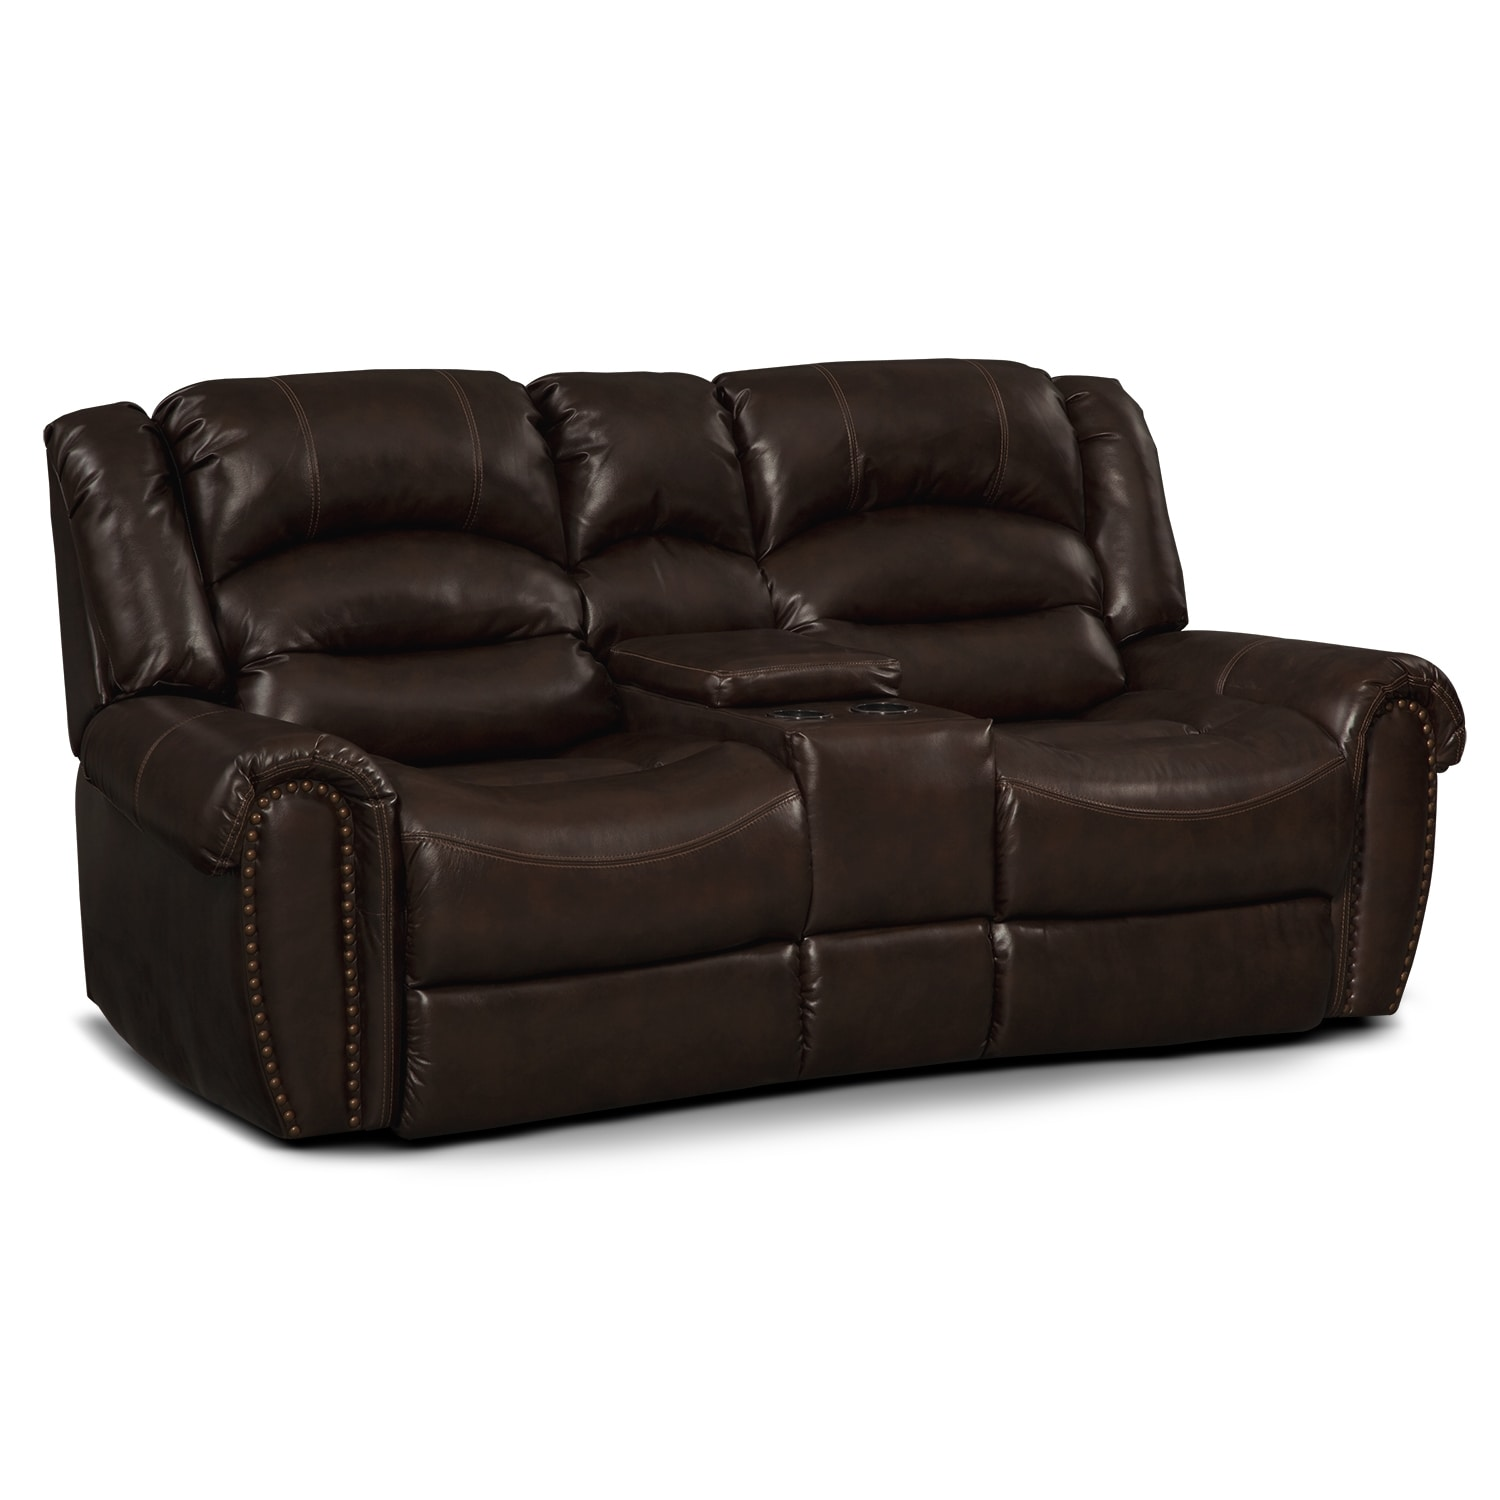 Galveston leather dual reclining loveseat value city furniture Reclining loveseat sale